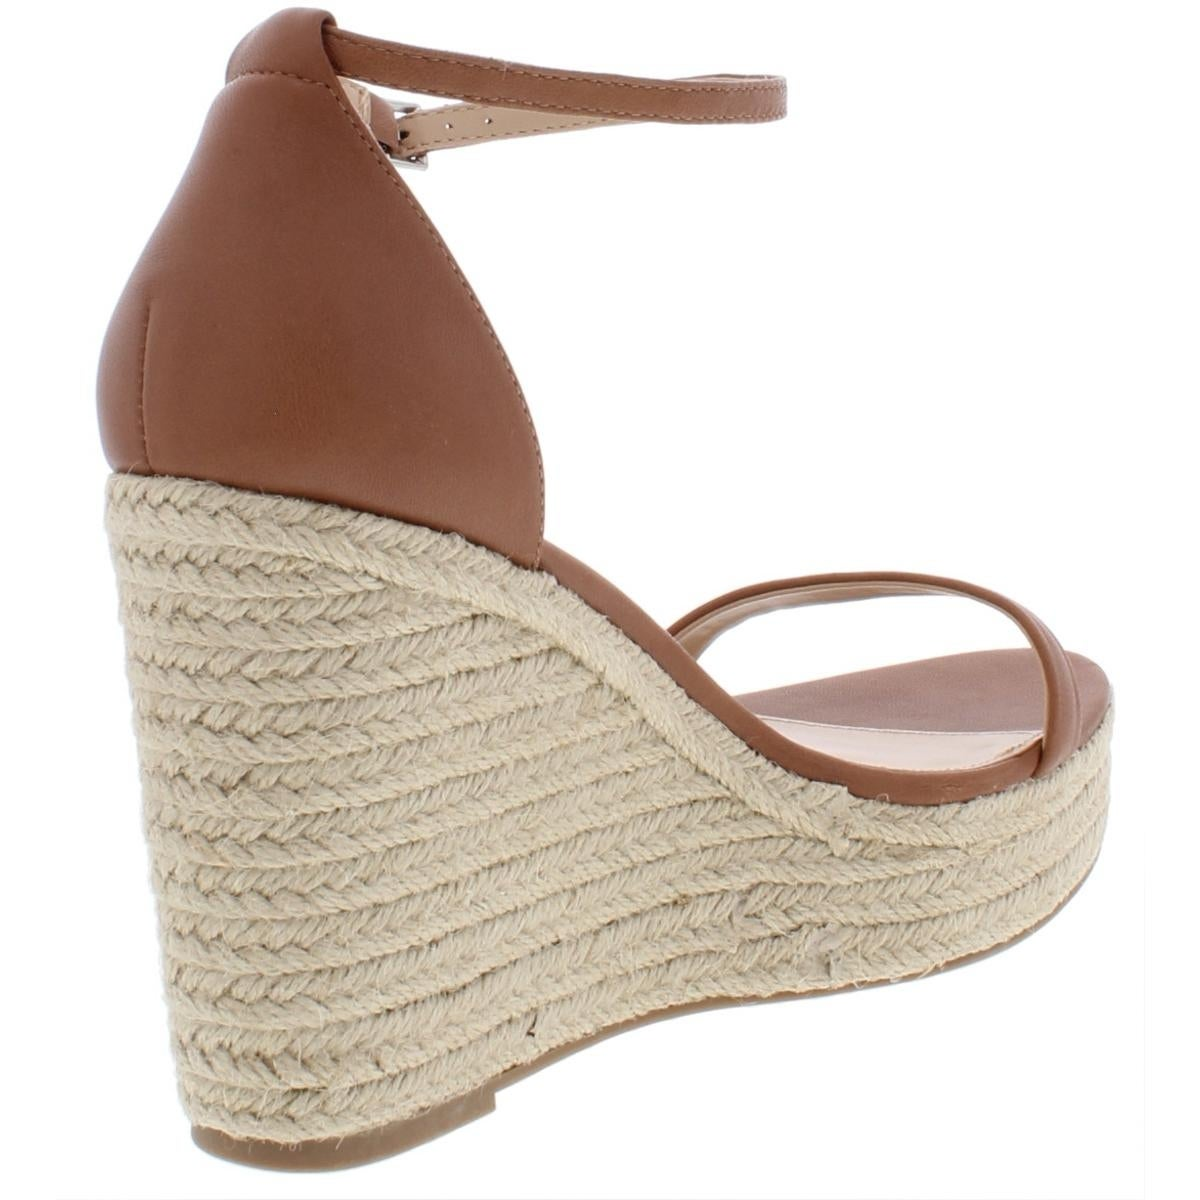 a7ecf174b7 Shop Steve Madden Womens Survive Wedges Padded Insole Espadrille - Free  Shipping On Orders Over $45 - Overstock - 27674259